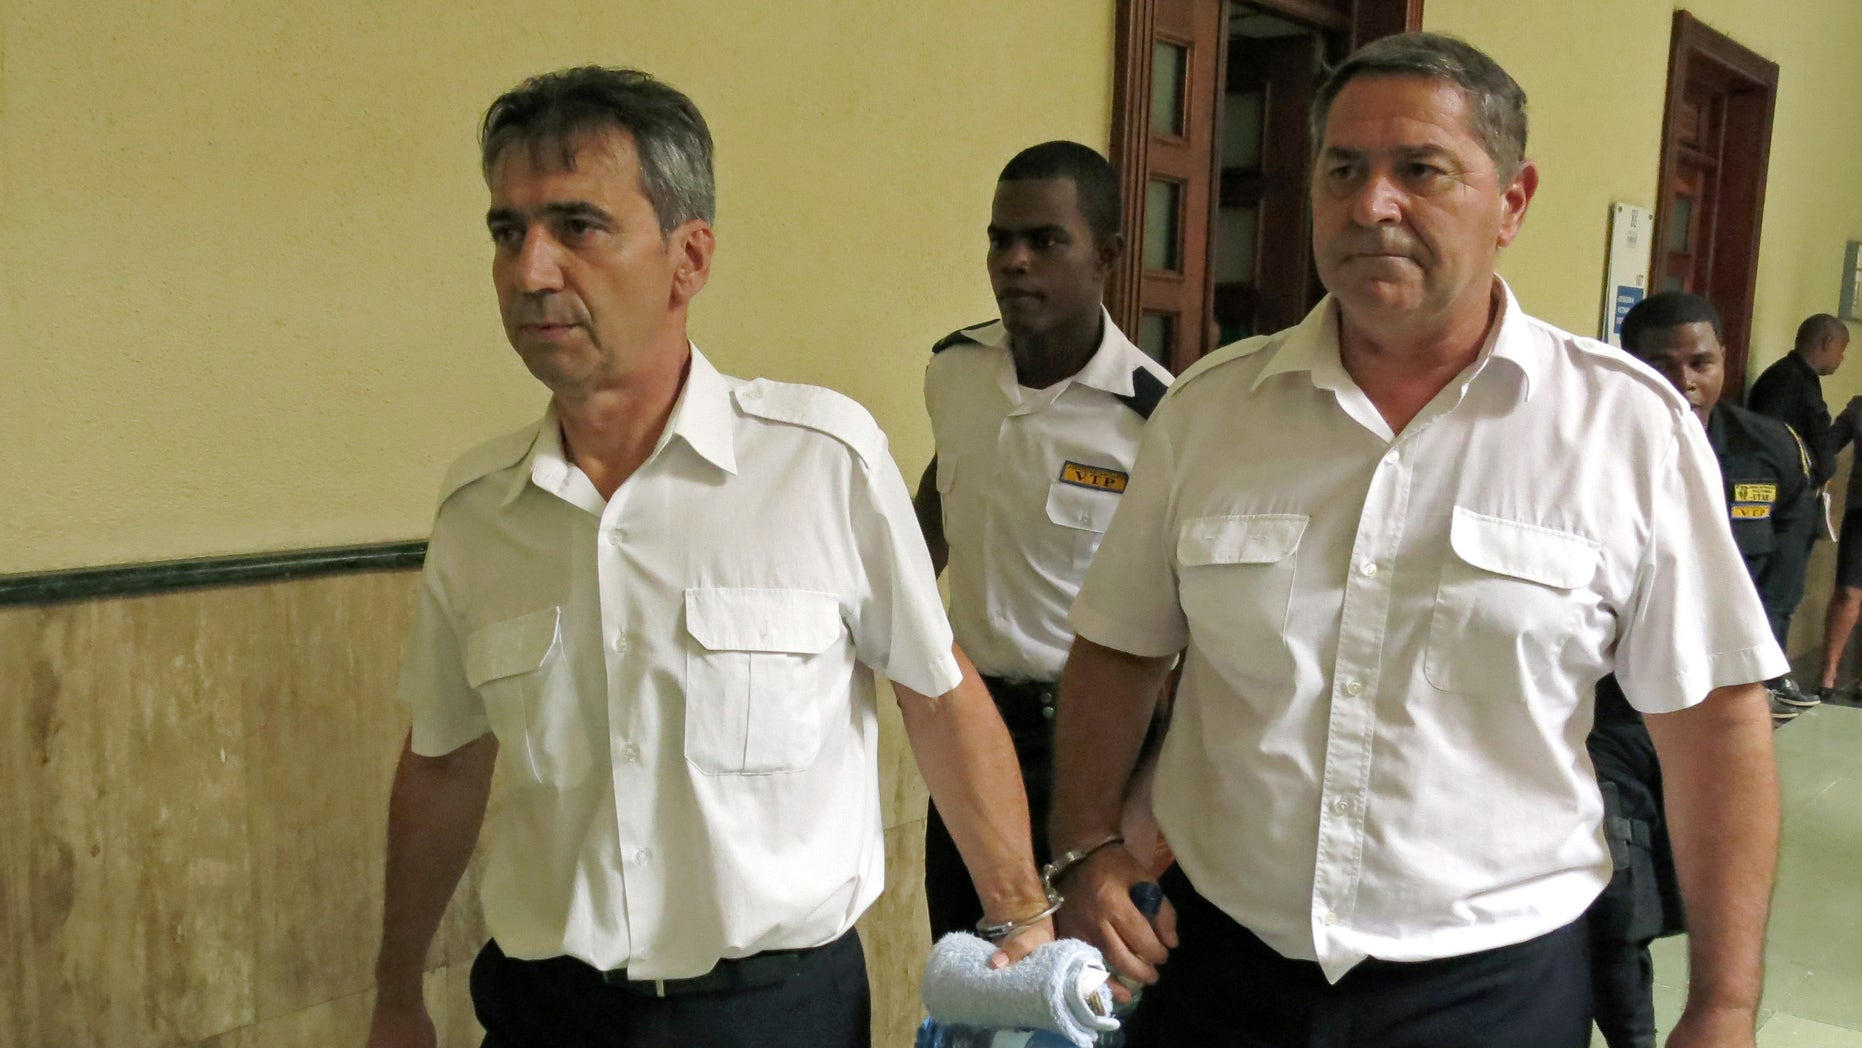 FILE - In this June 17, 2014 file photo, French pilots Bruno Odos, left, and Pascal Jean Fauret, who have been formally charged with drug trafficking, are escorted to a courtroom in Santo Domingo, Dominican Republic (AP Photo/Ezequiel Abiu Lopez, File)